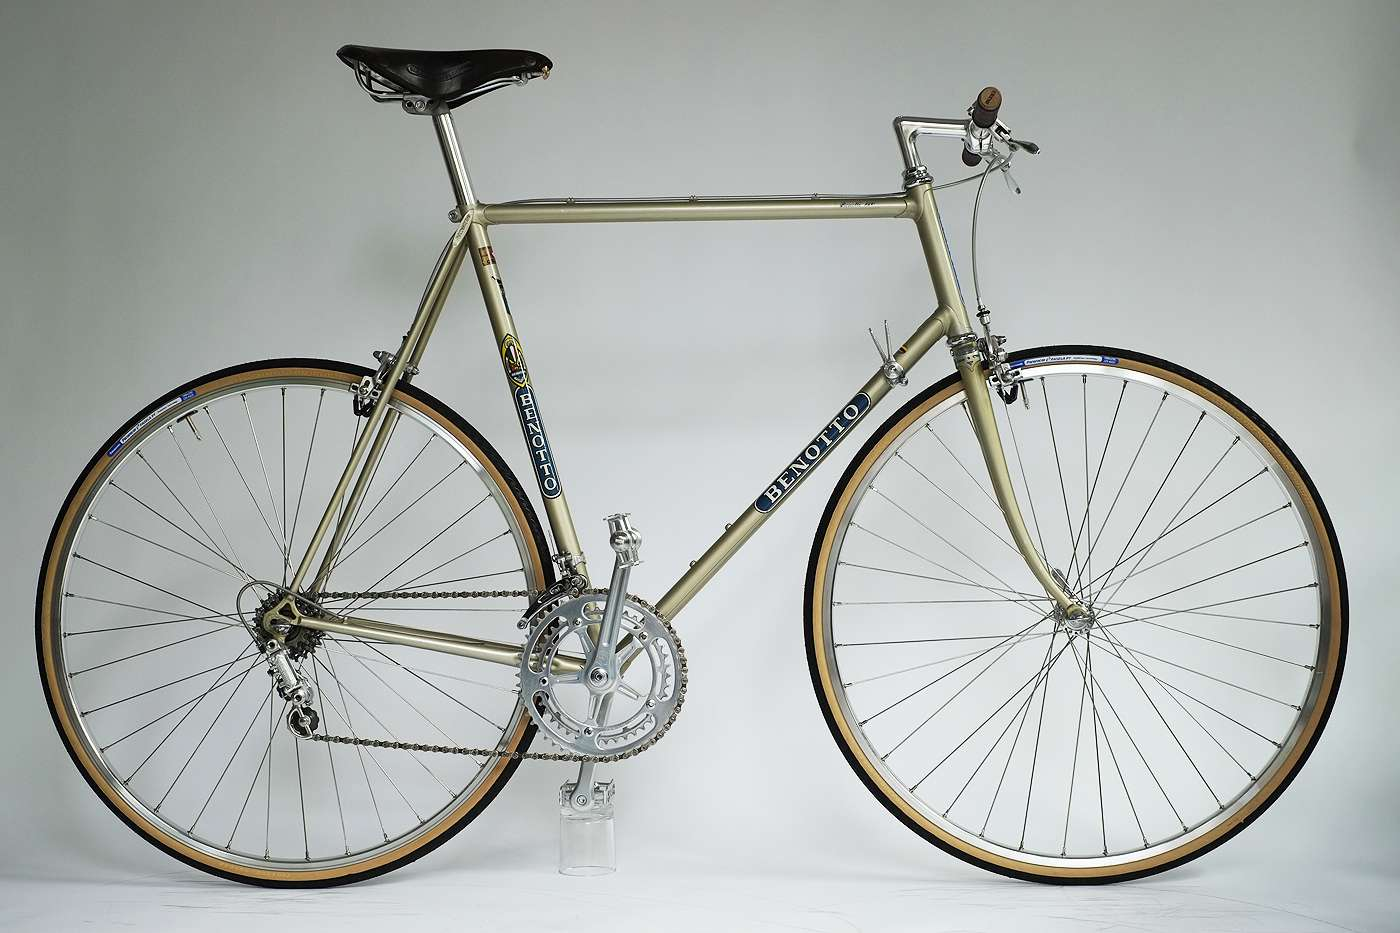 Benotto_1500_Rennrad_Classic_Road_Bike_01